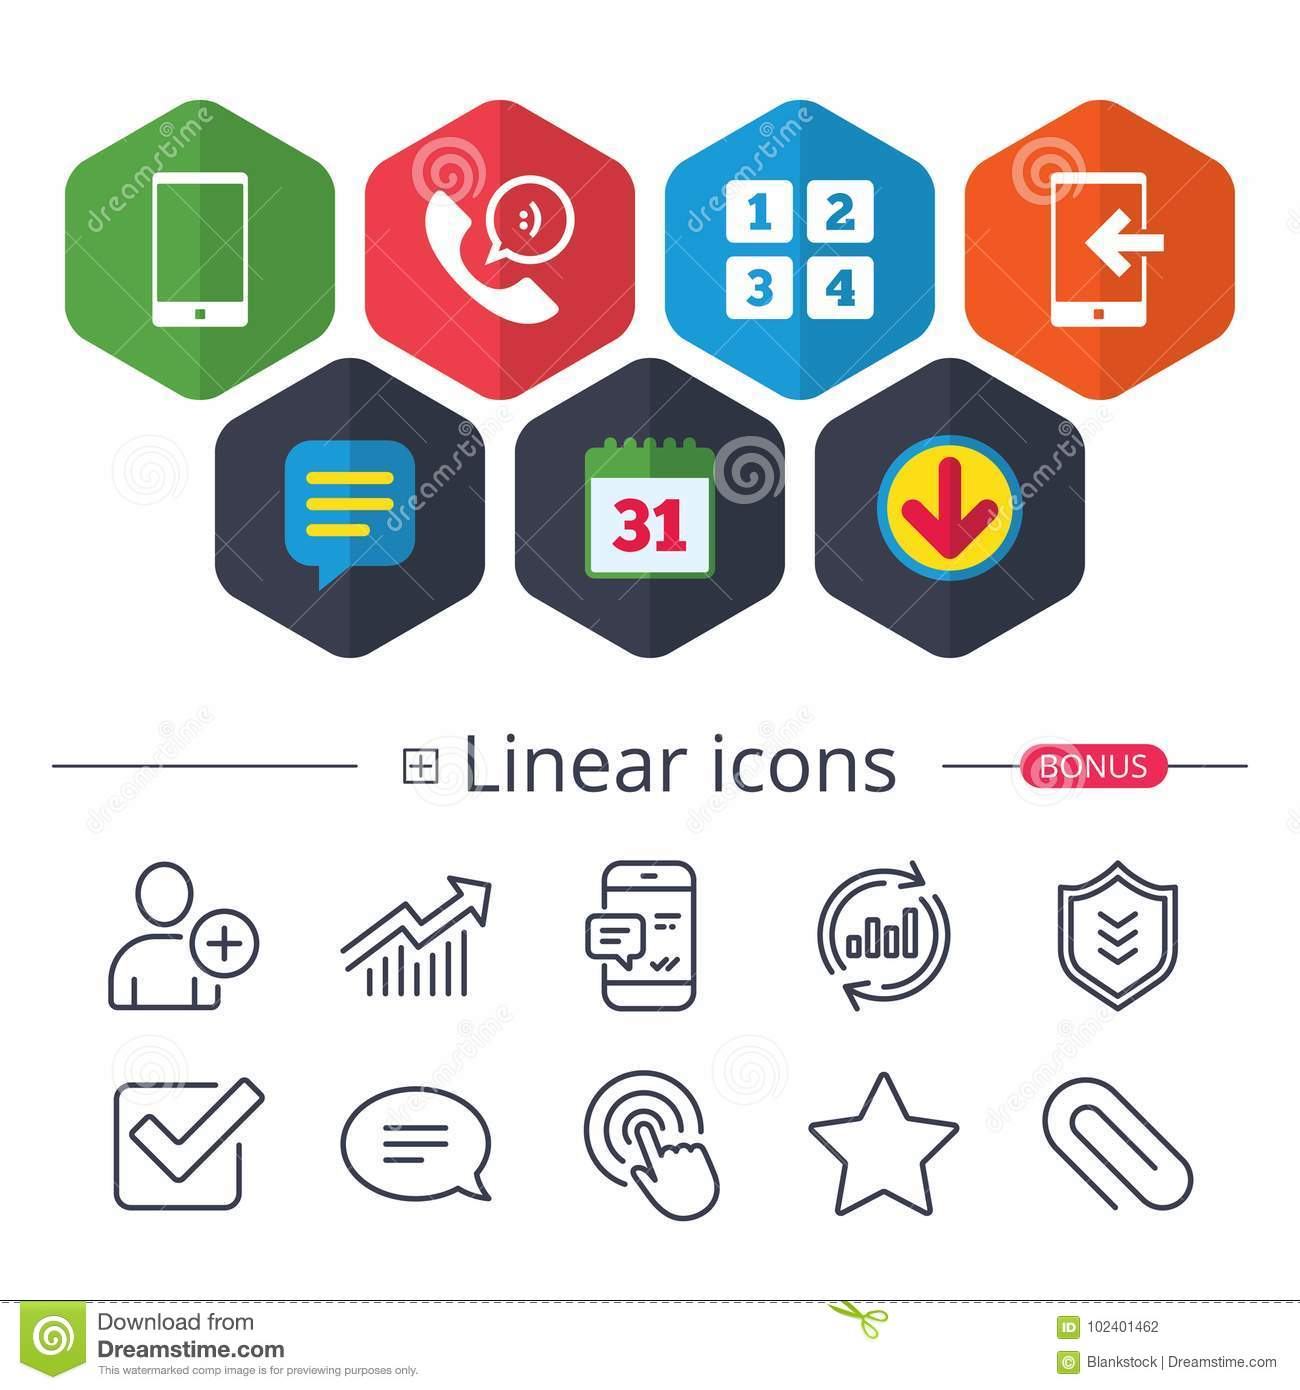 Phone icons call center support symbol stock vector phone icons smartphone incoming call sign call center support symbol cellphone keyboard symbol chat report graph line icons more linear signs vector biocorpaavc Images